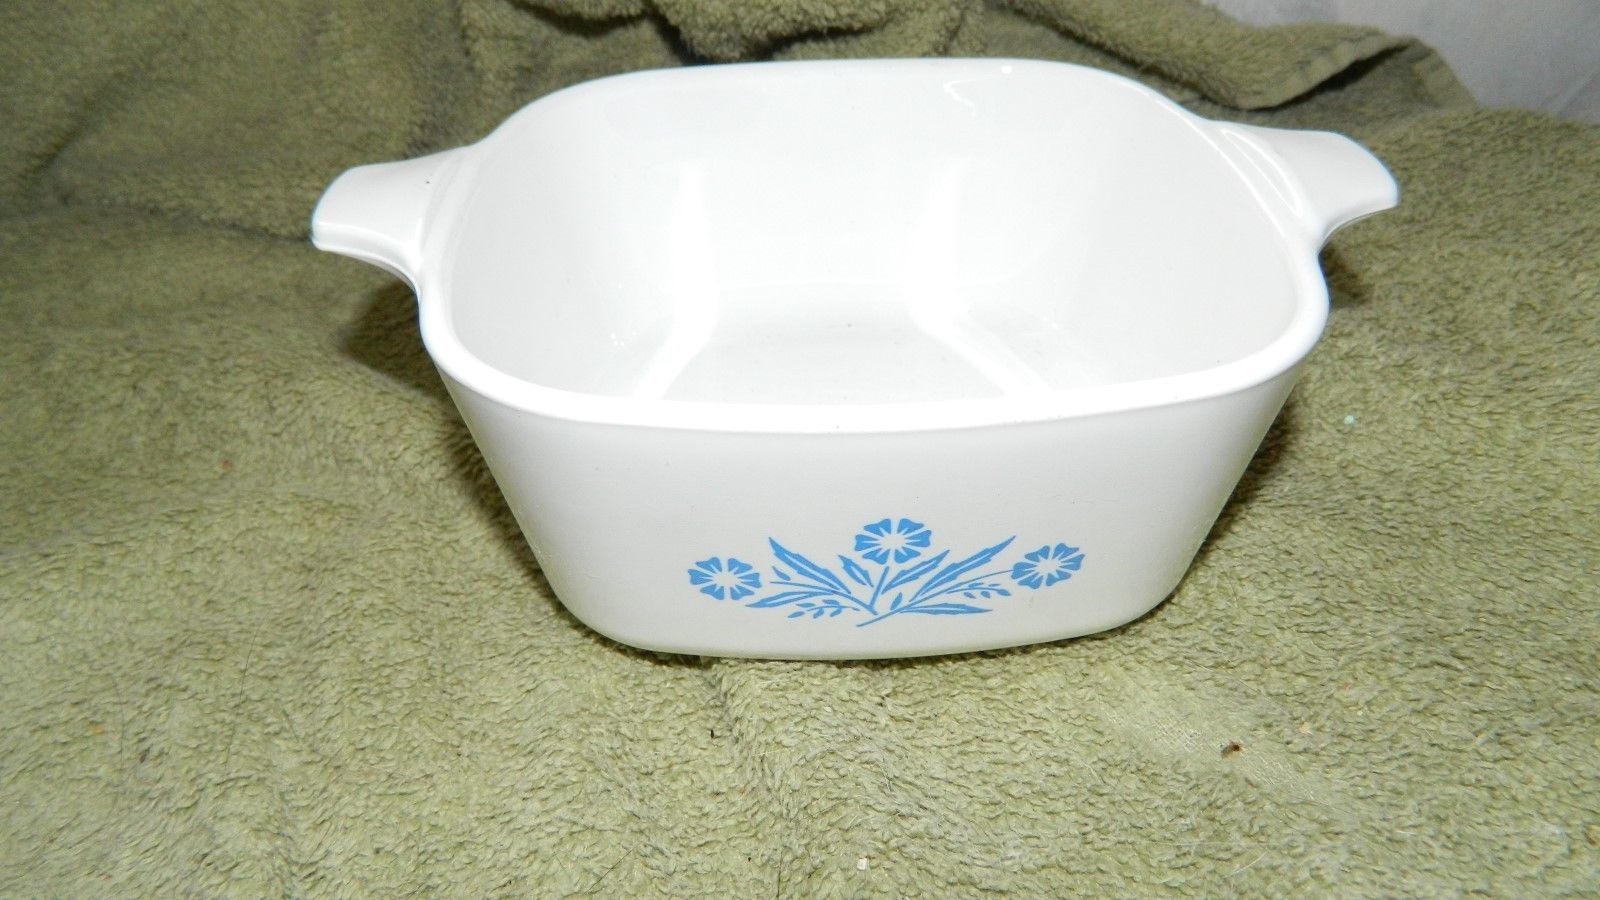 Primary image for CORNING WARE P-43-B BLUE CORNFLOWER CASSEROLE DISH + LID 22 OUNCE FREE US SHIP